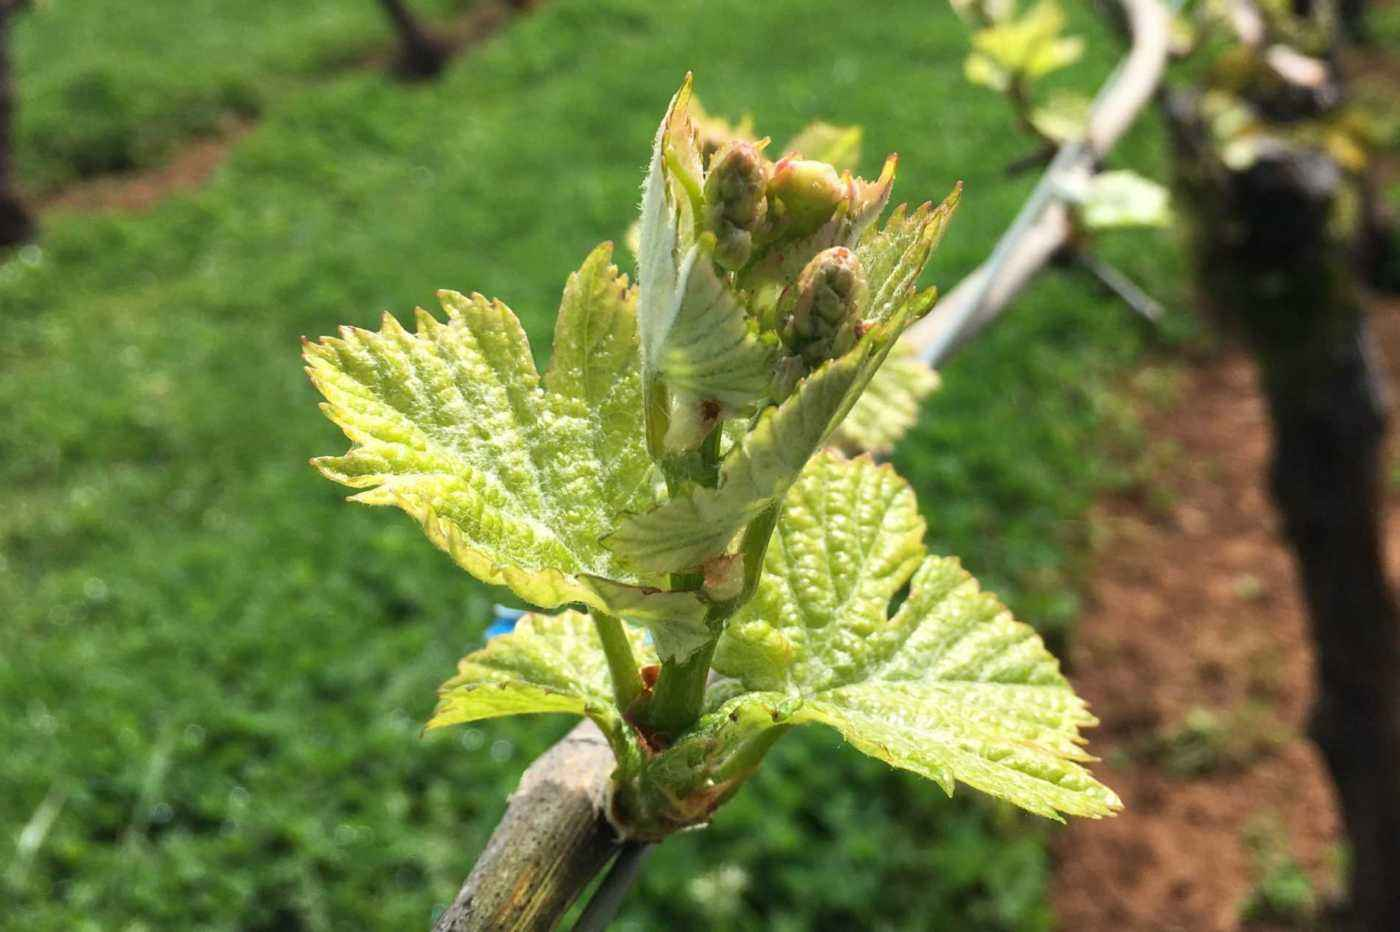 Vineyard new growth